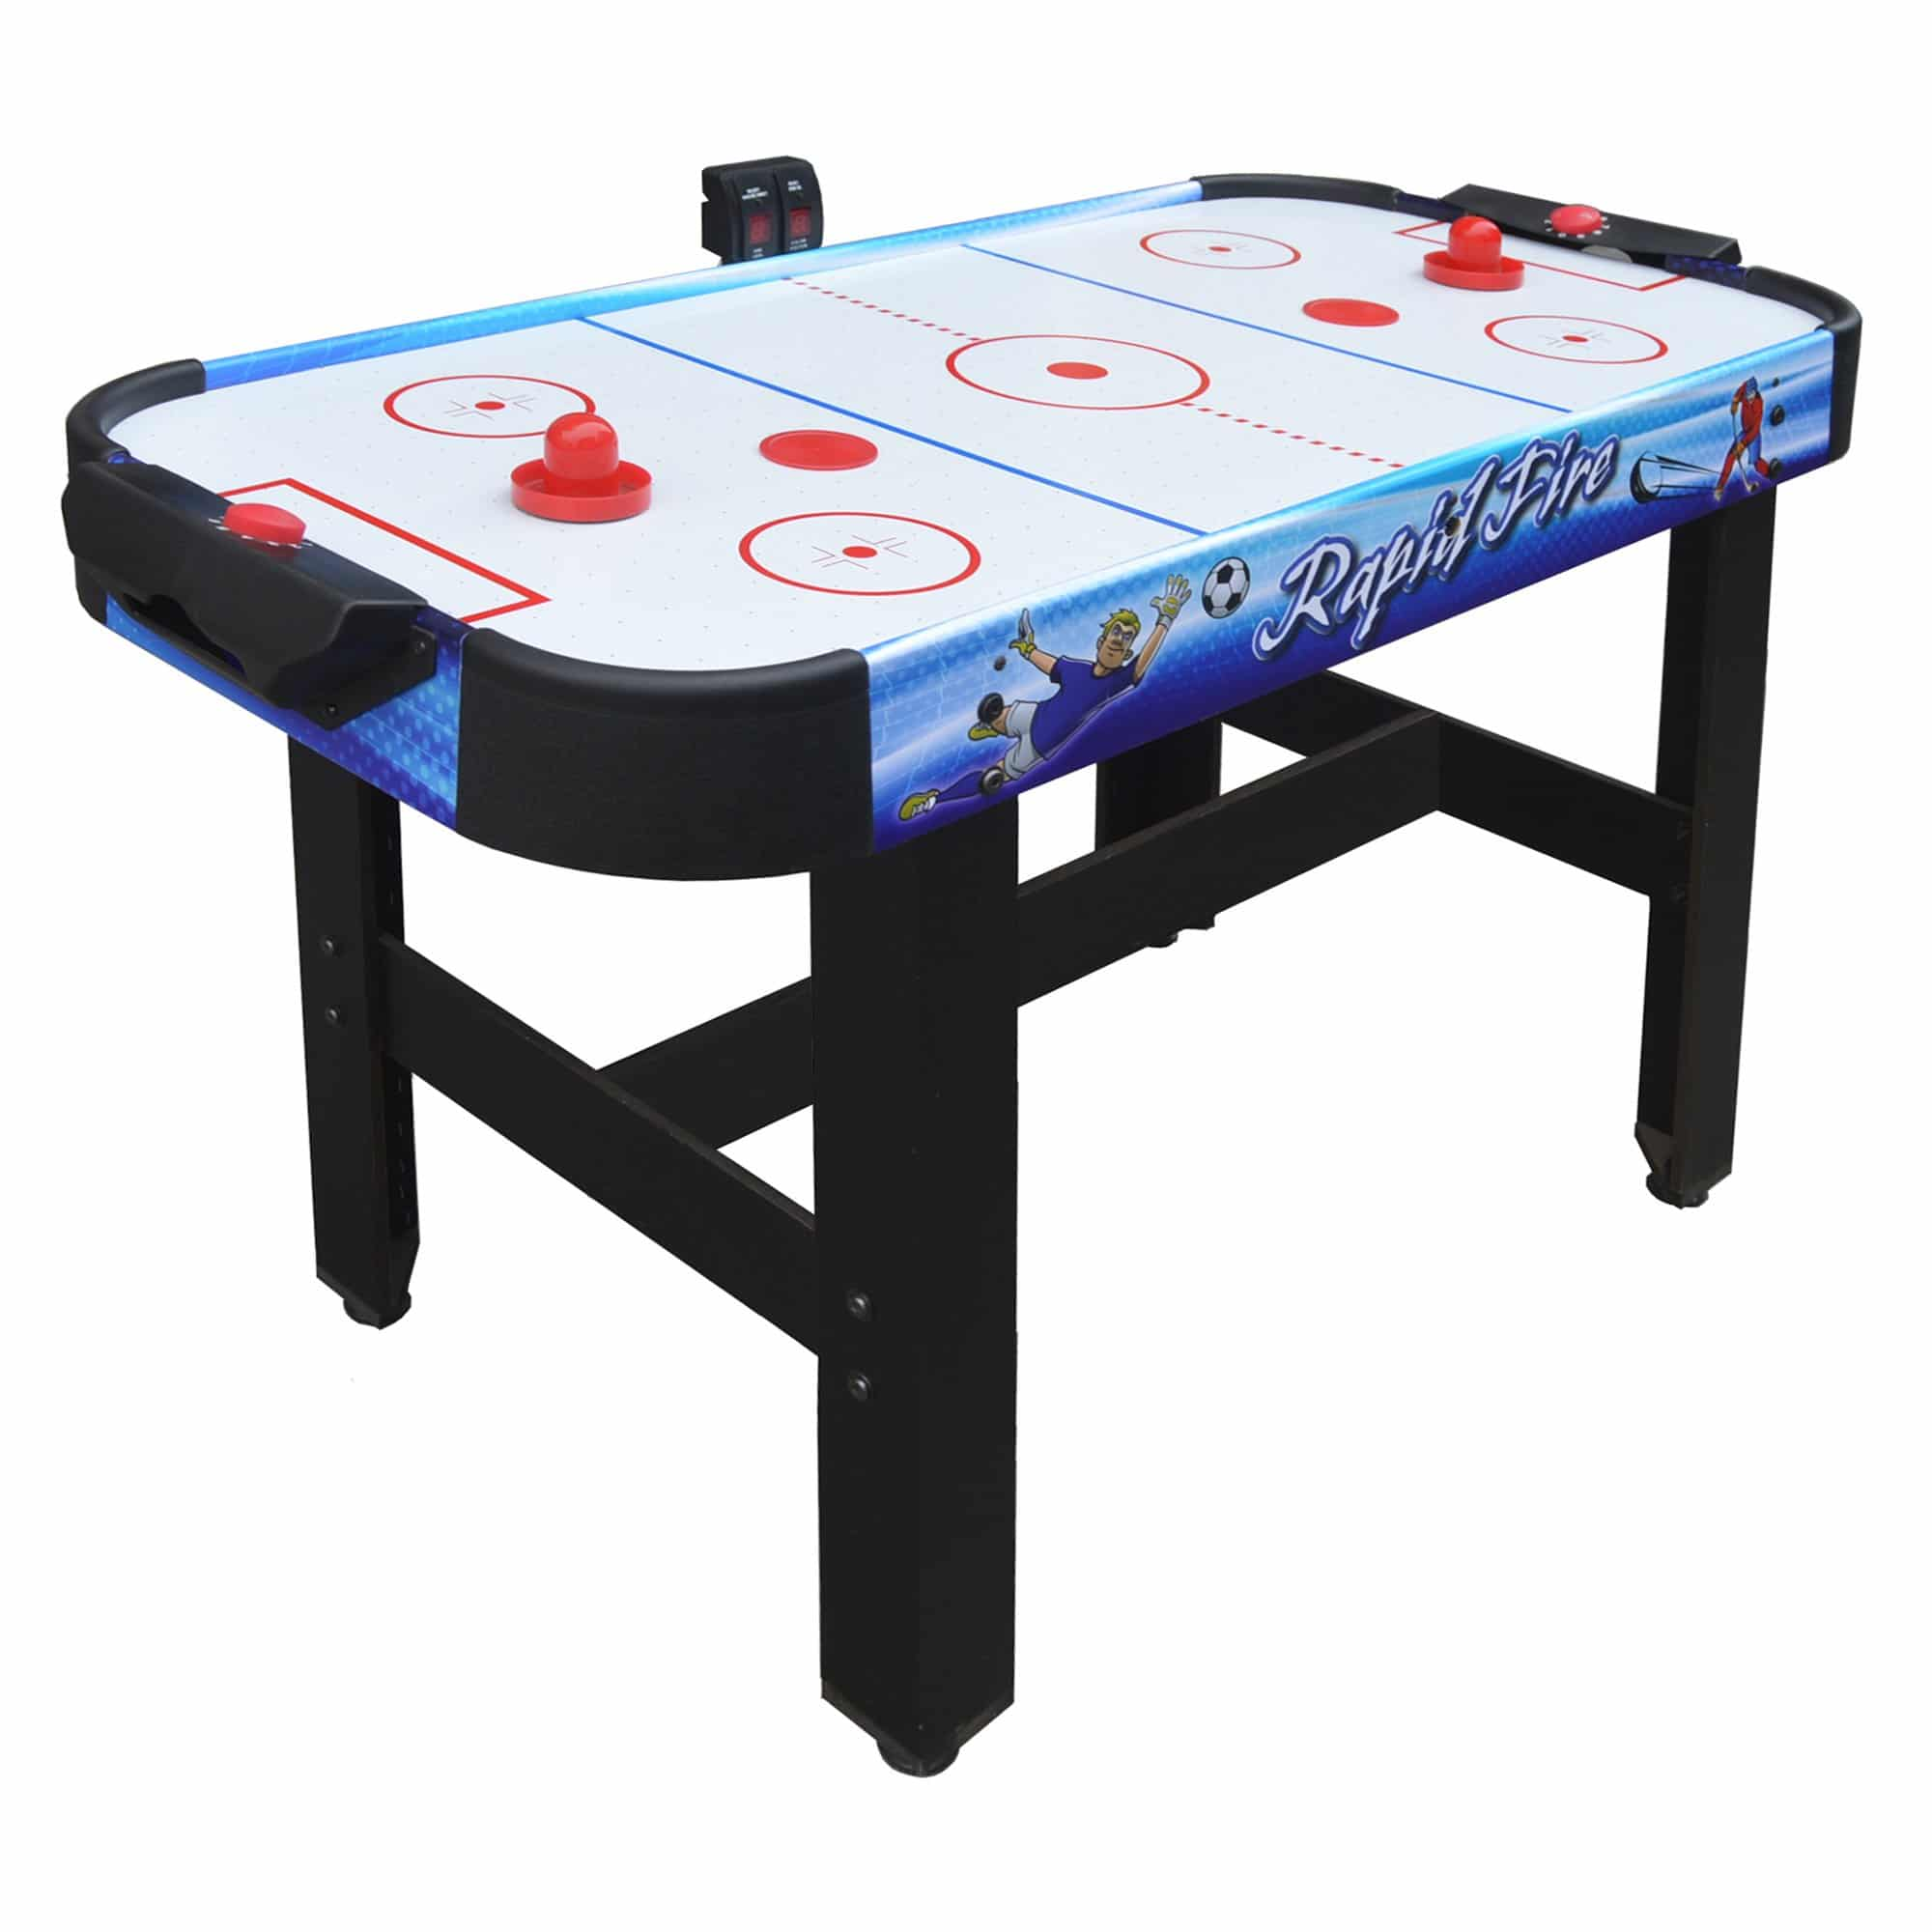 Rapid Fire 42 In 3-in-1 Air Hockey Multi-Game Table - Pool Warehouse